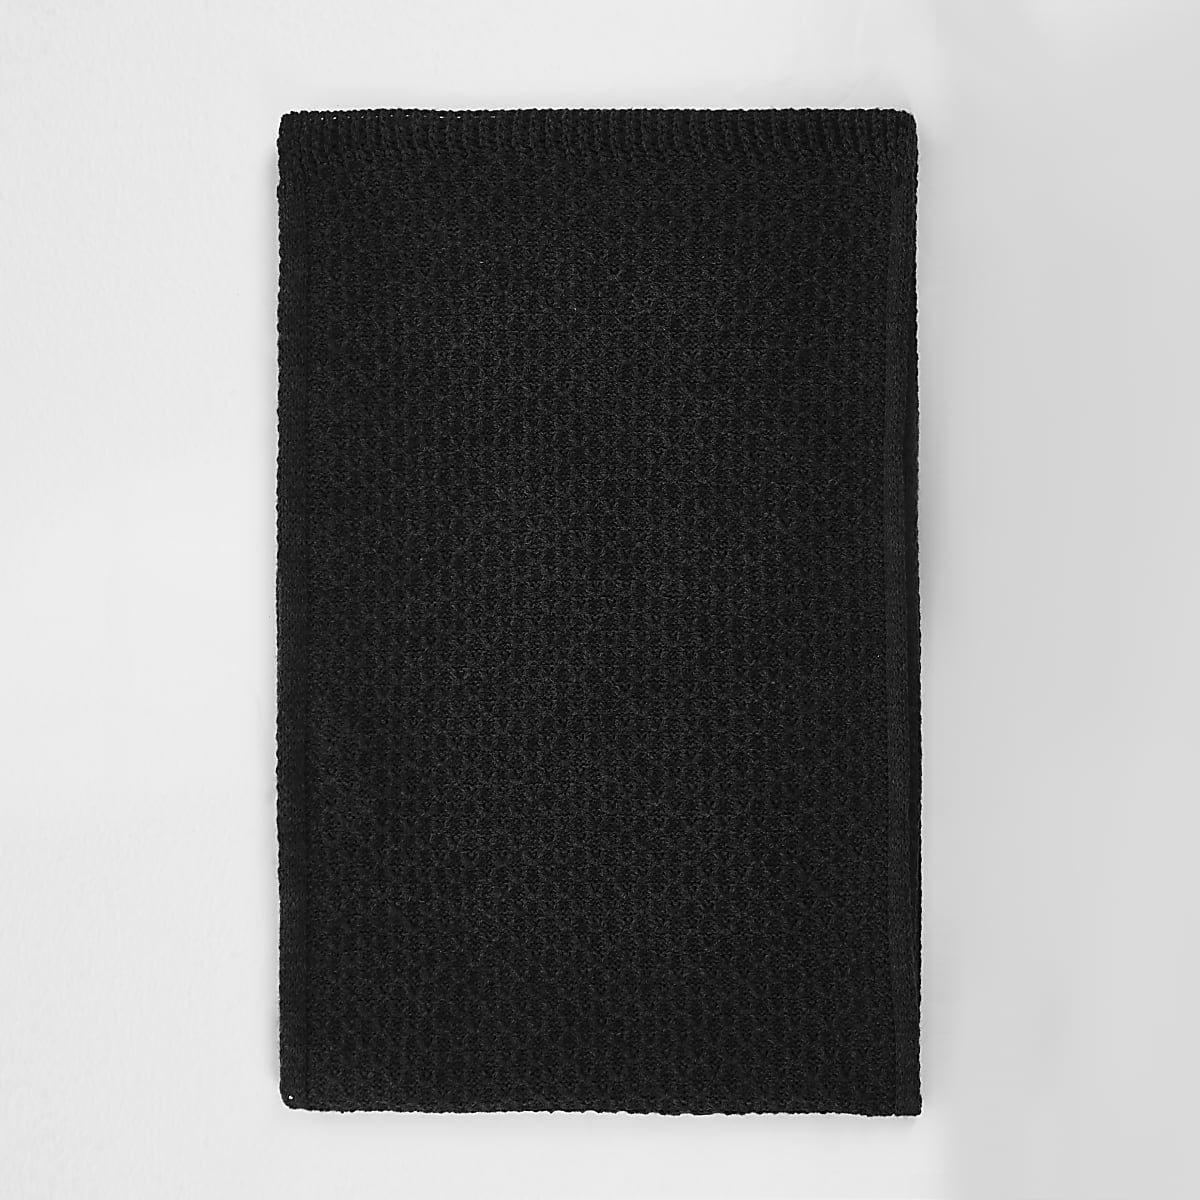 Charcoal grey textured knit scarf